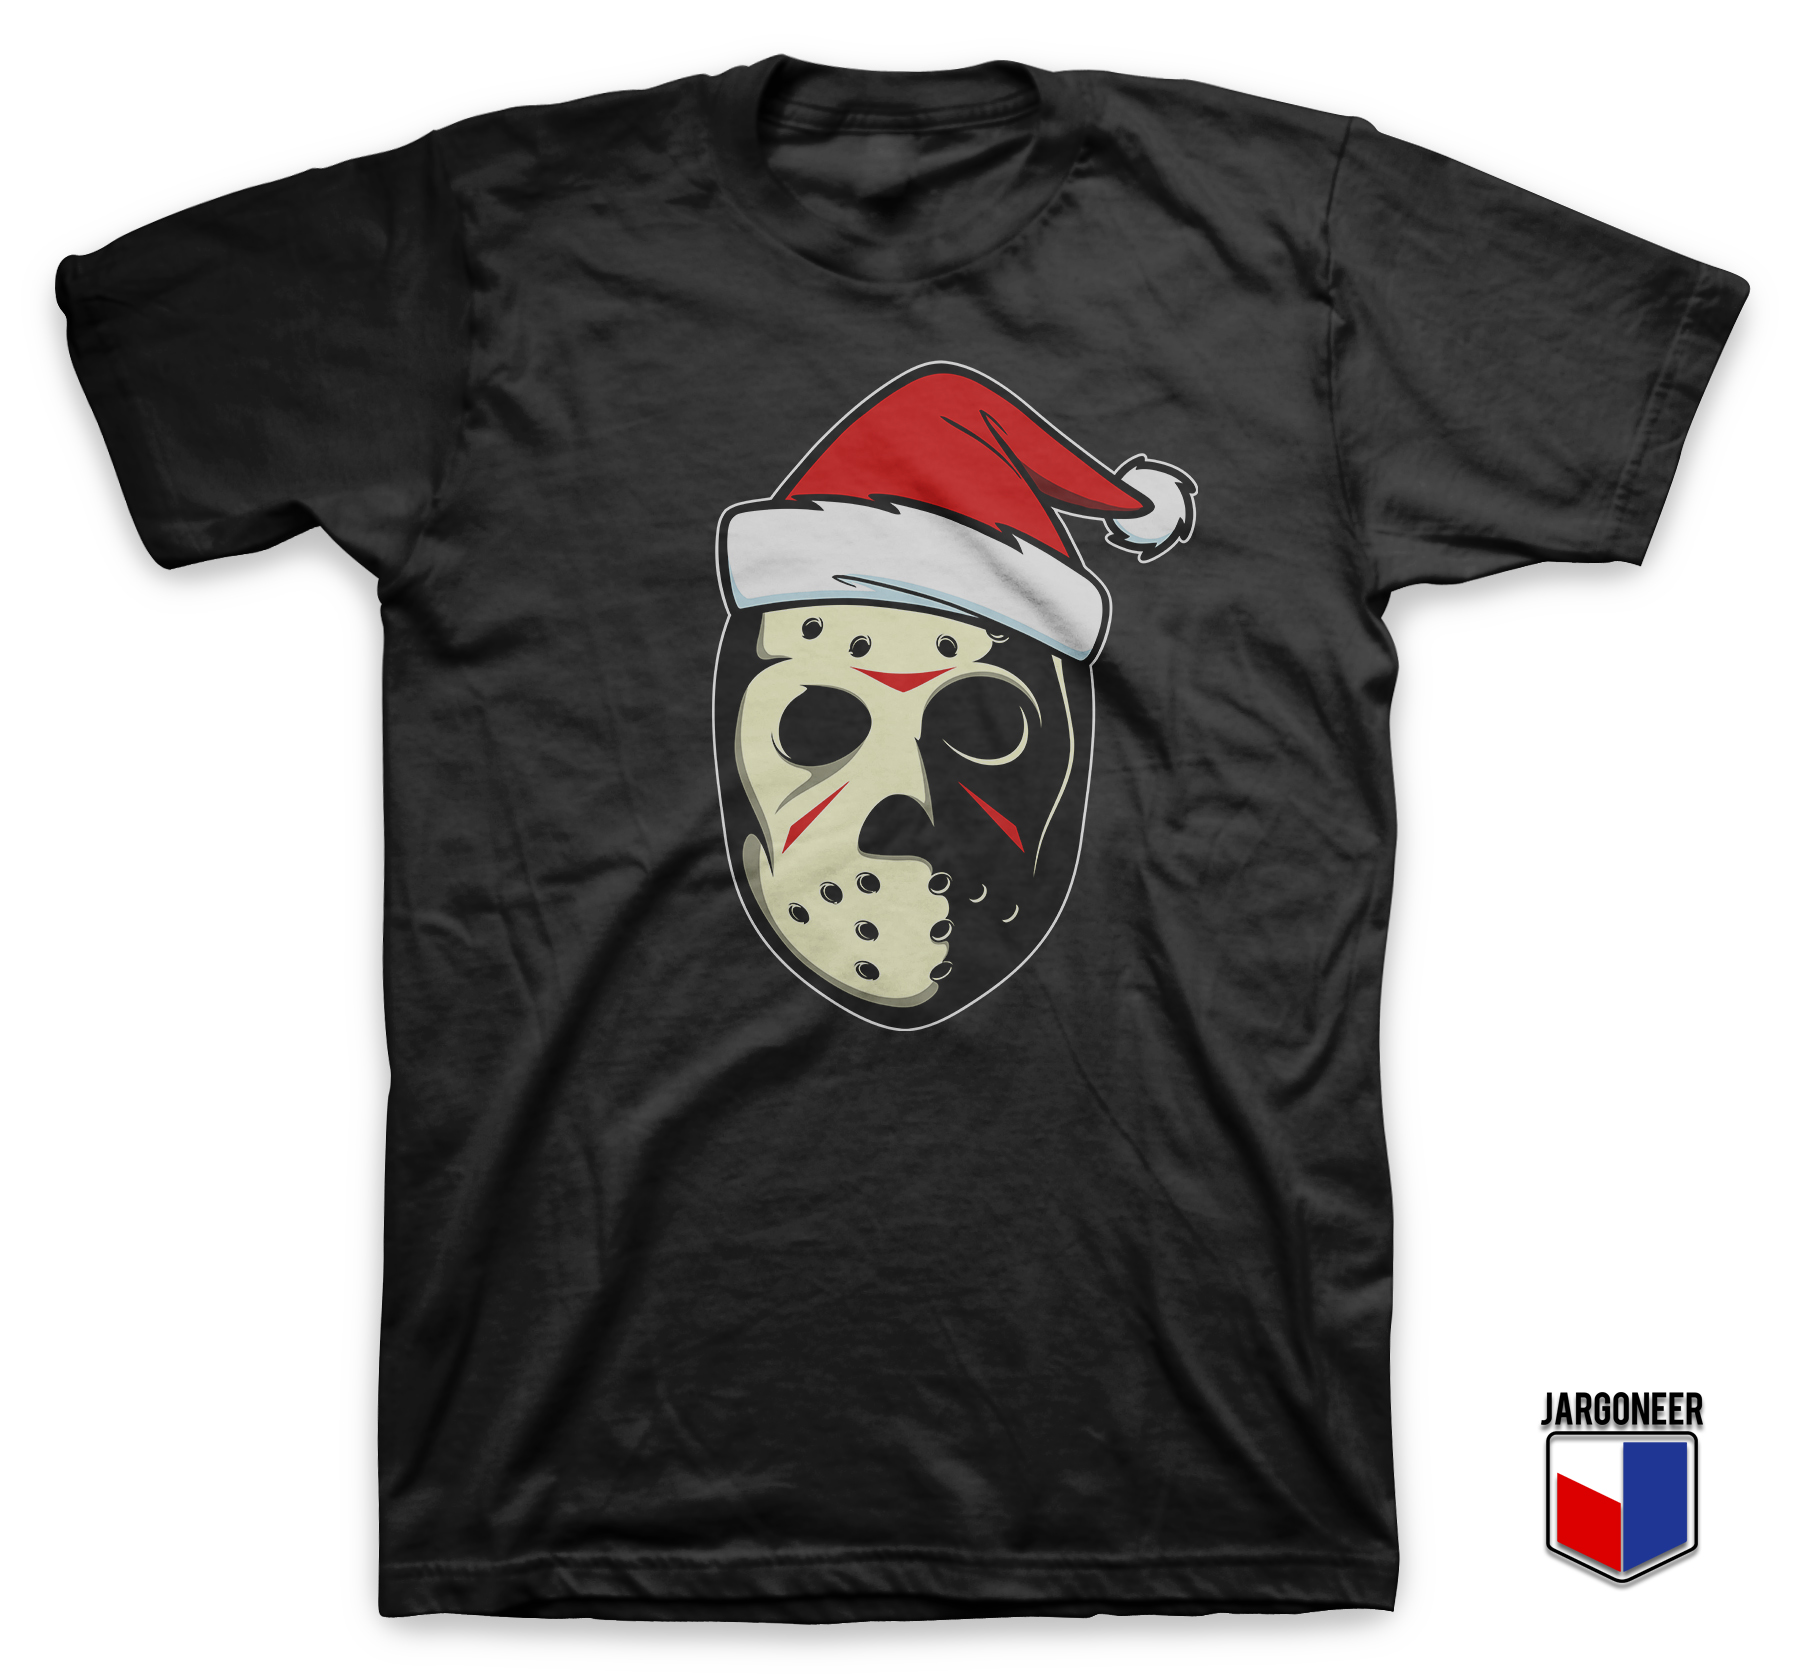 Jason X-Mas T-Shirt